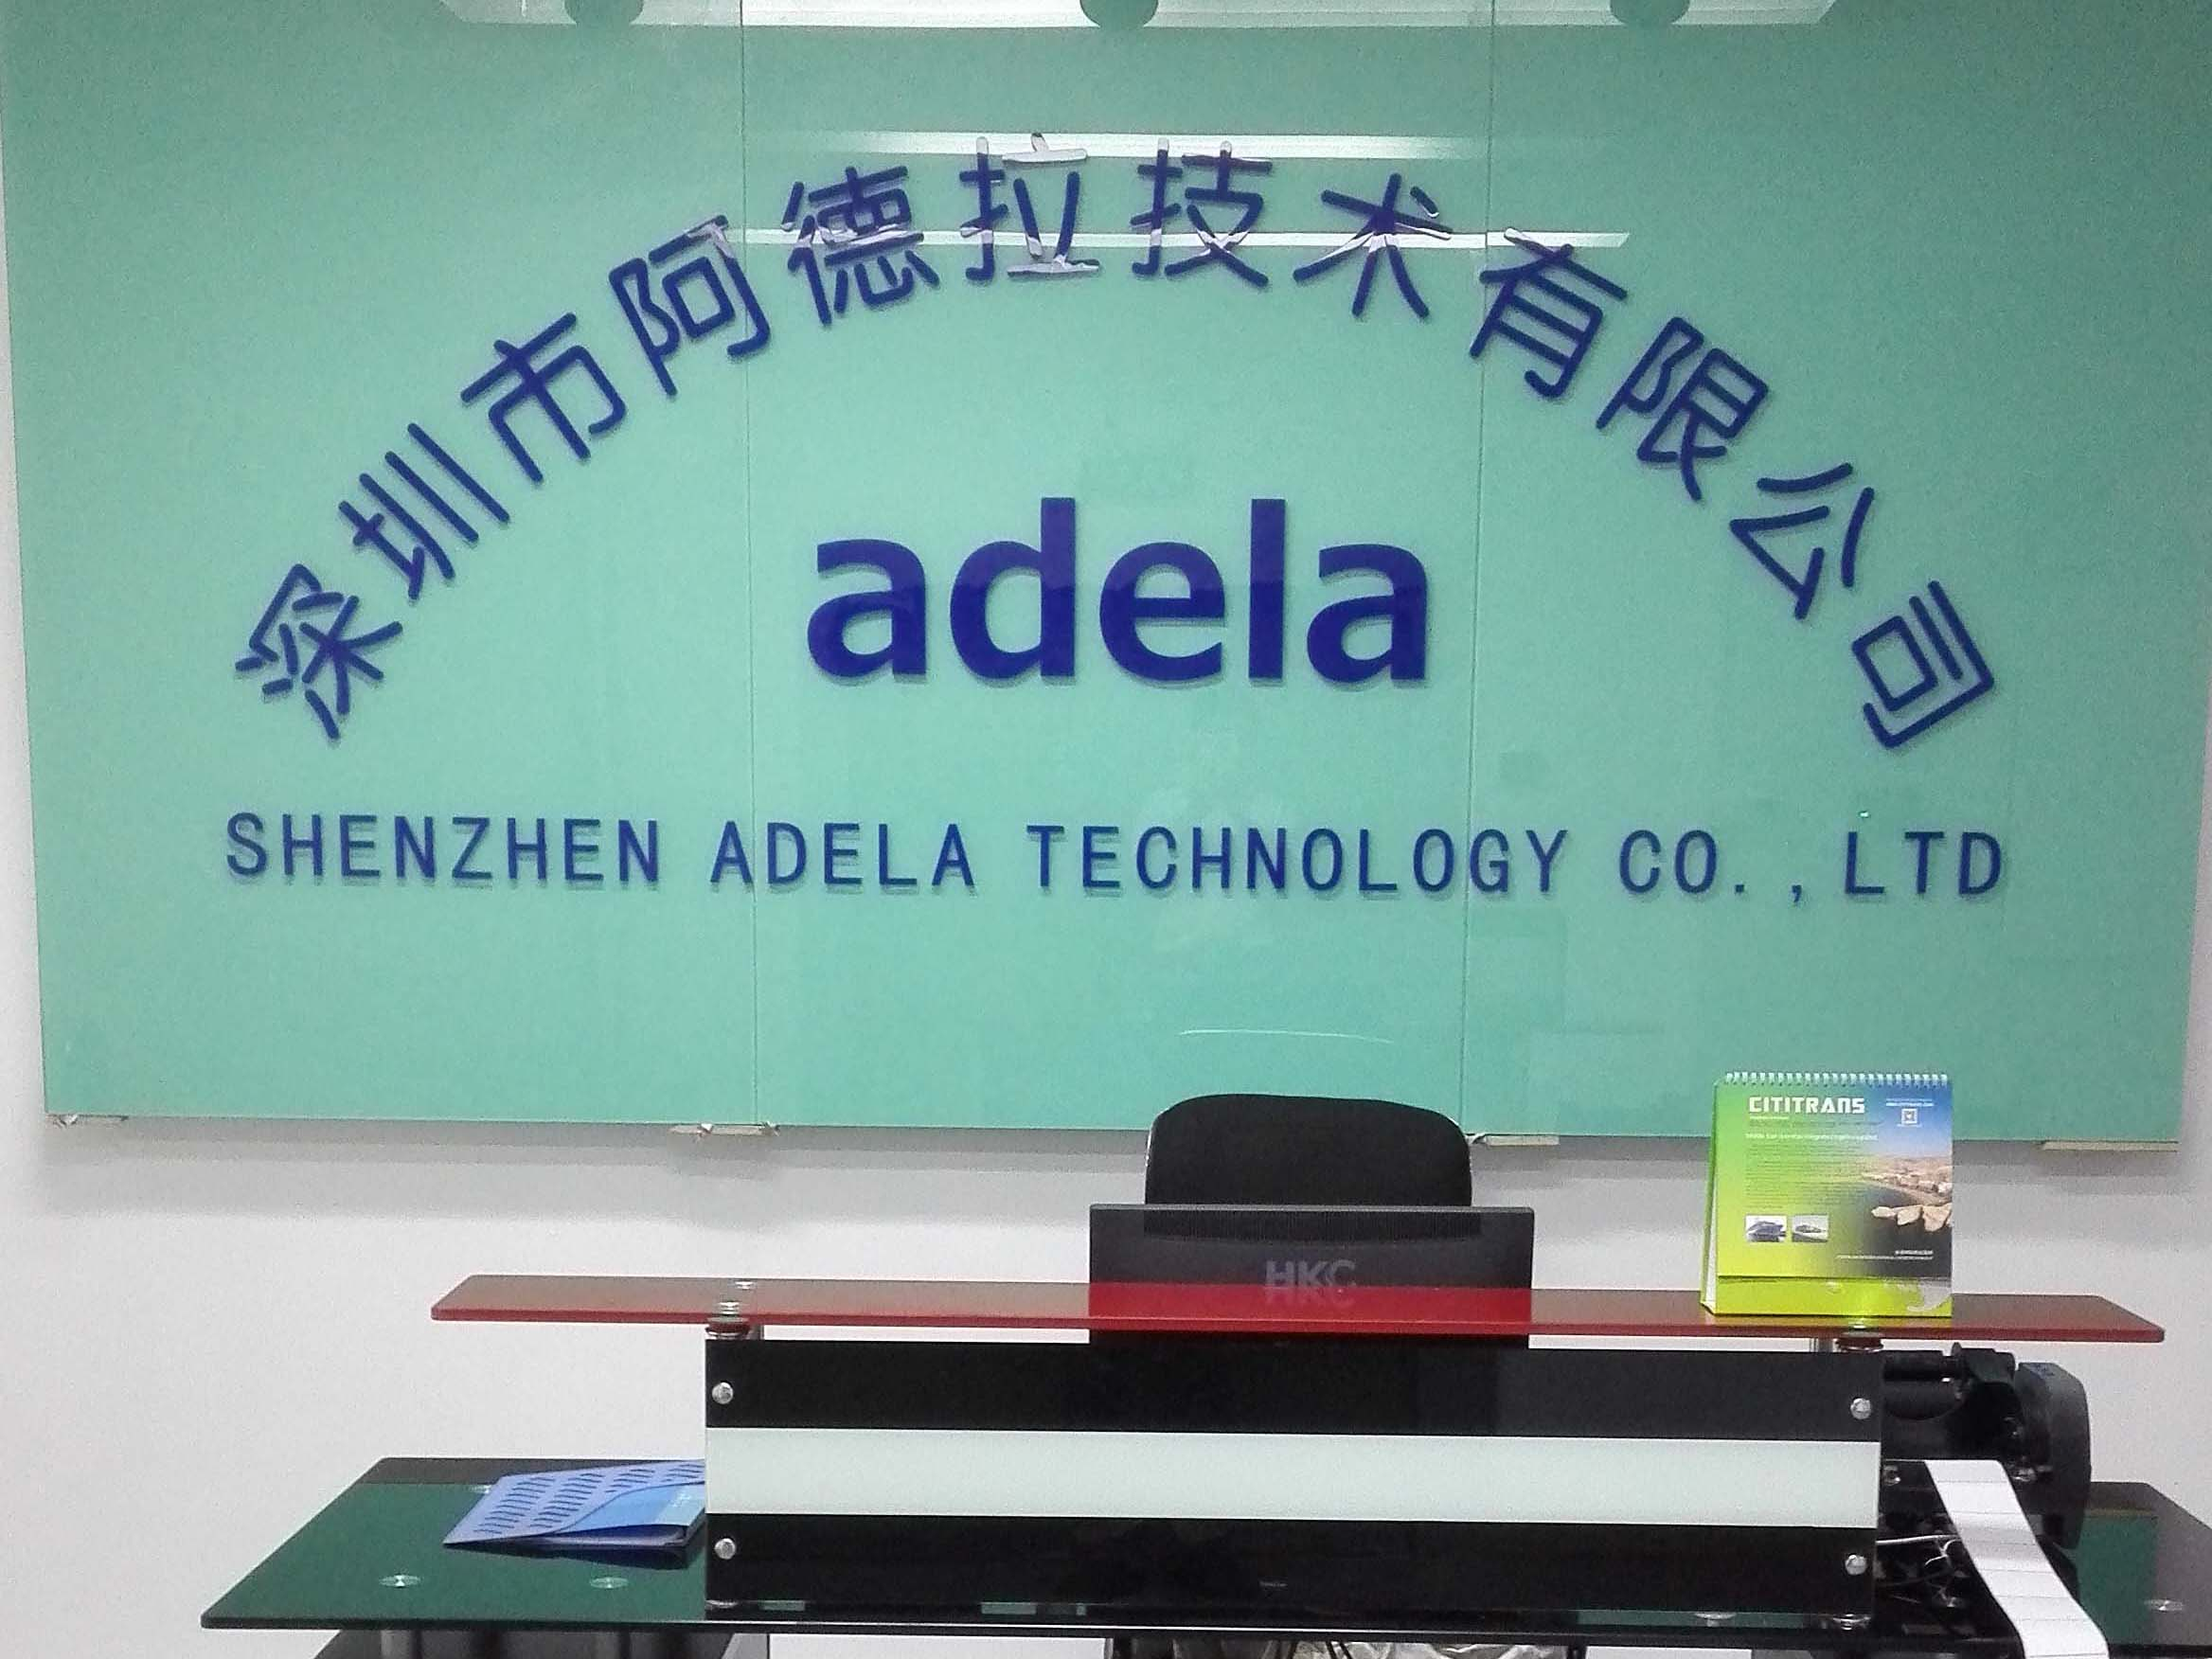 Shenzhen Adela Technology Co., Ltd.